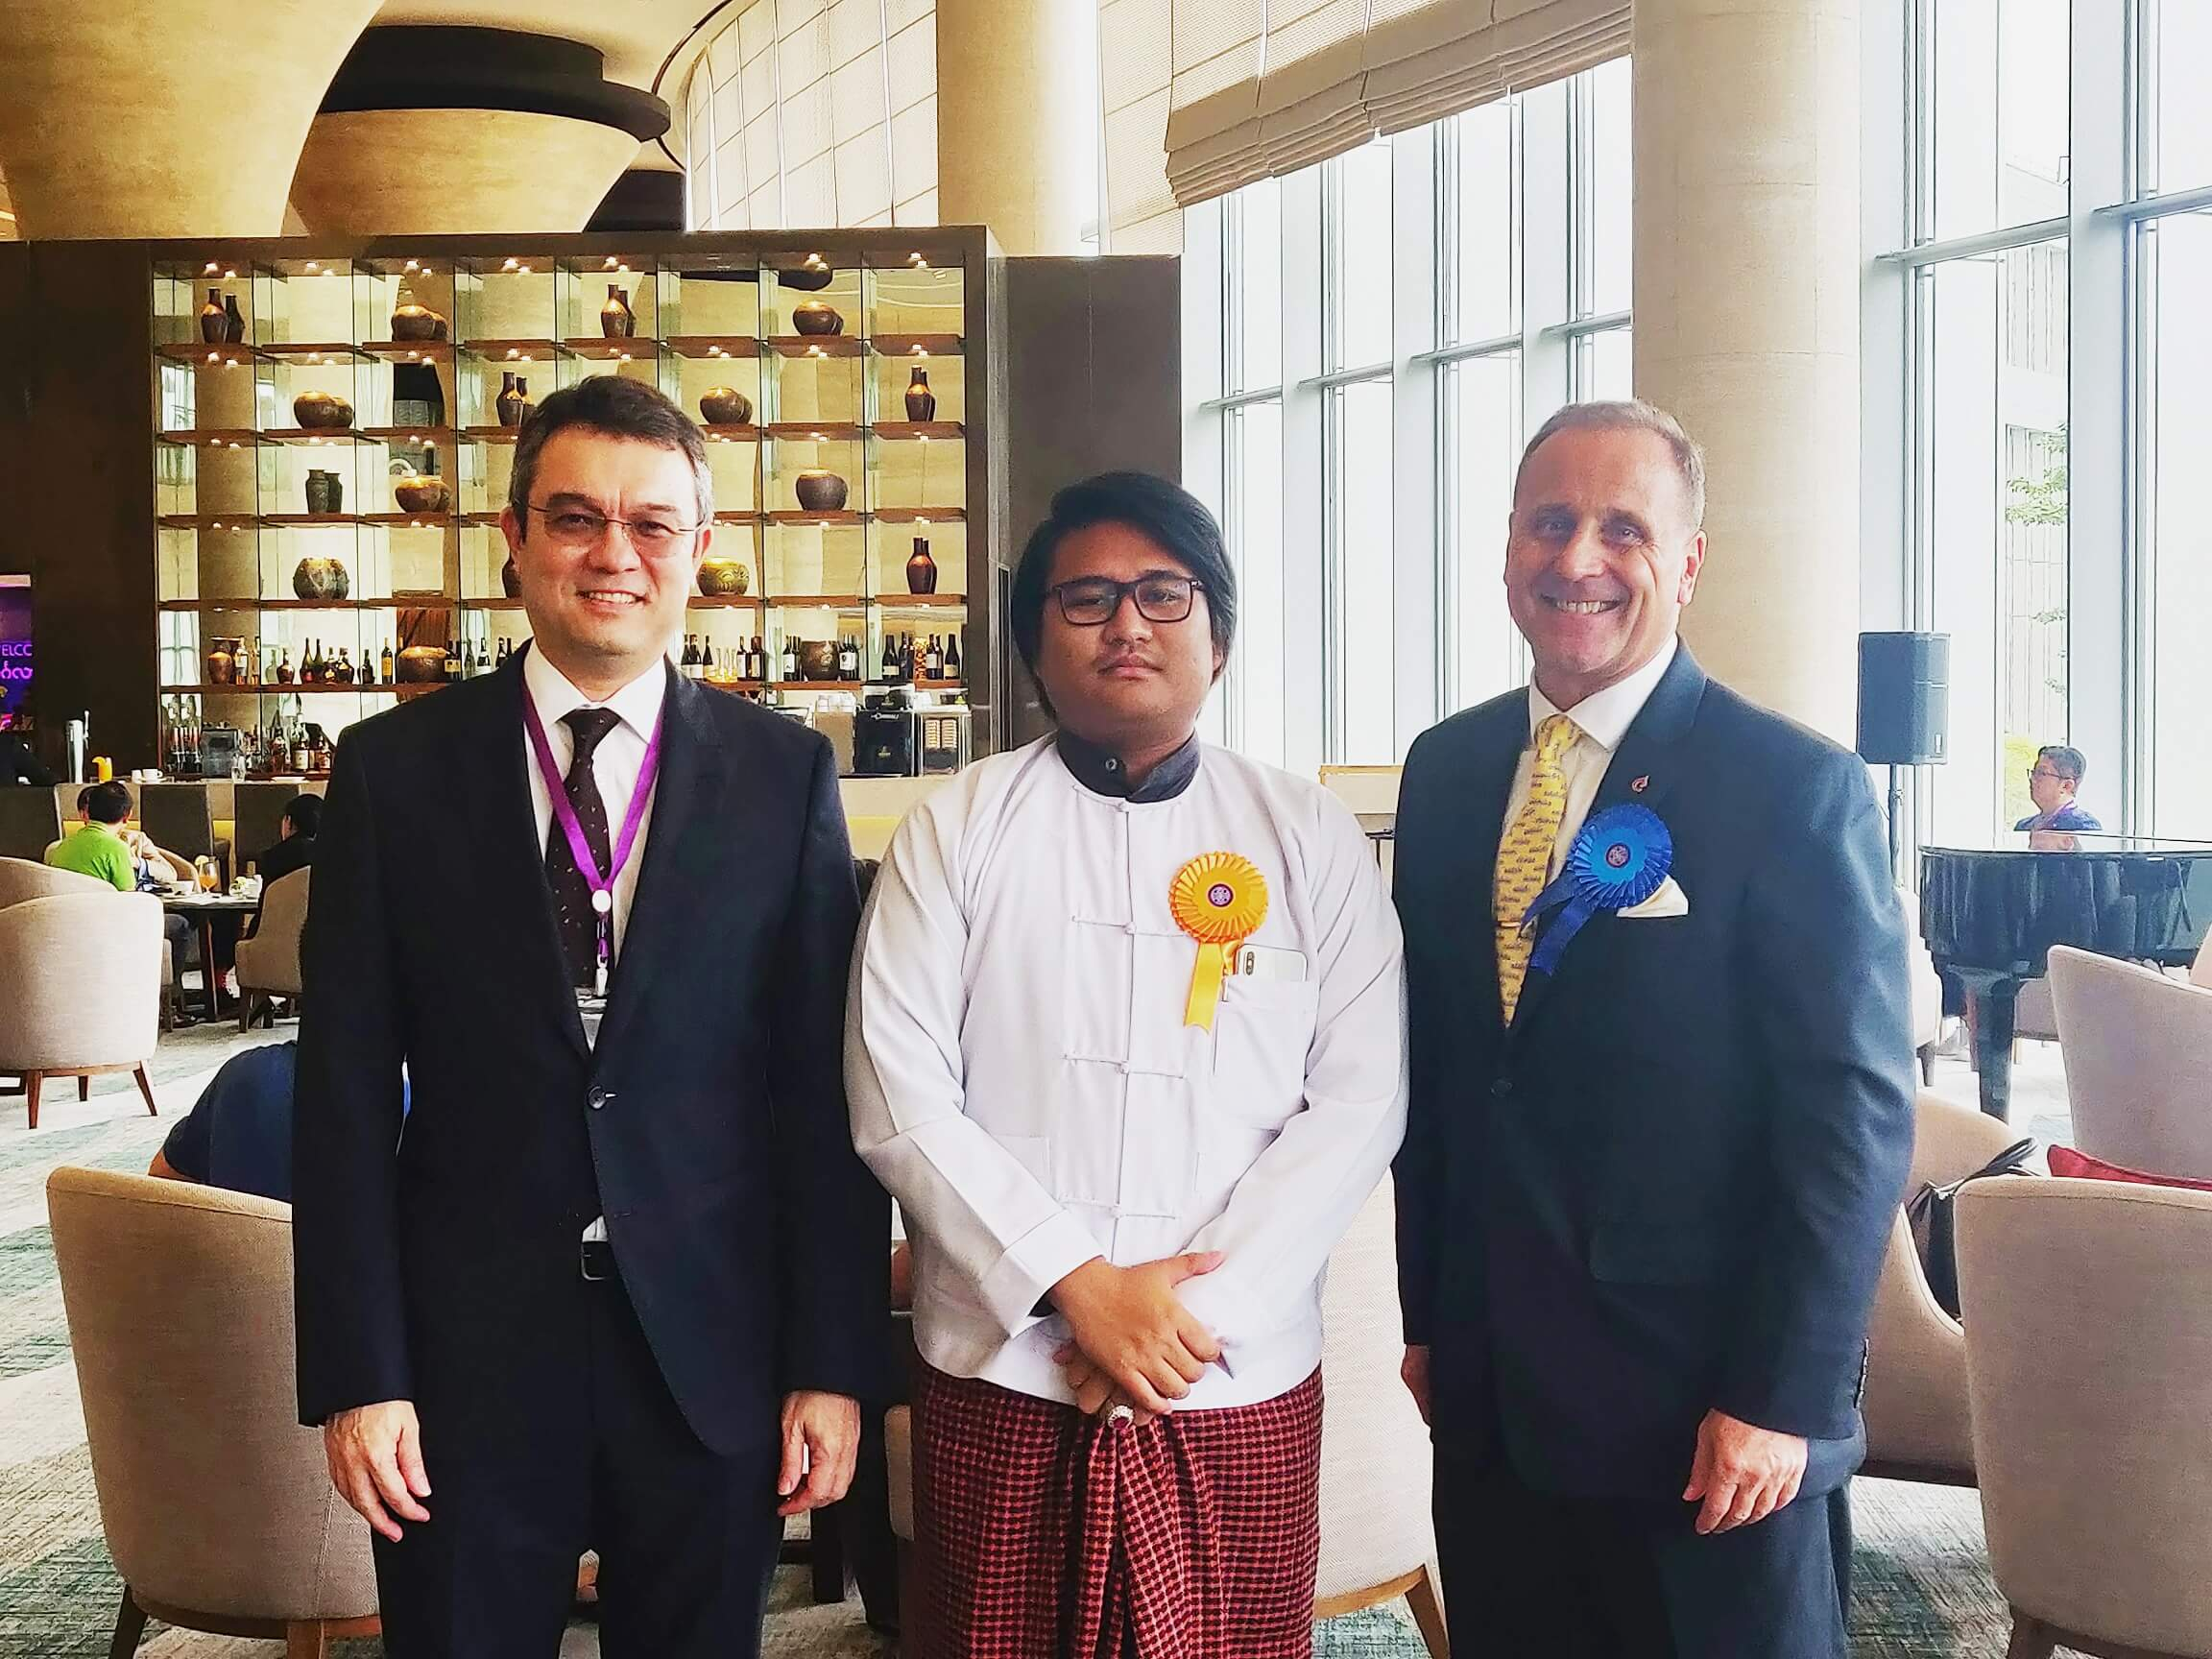 Centara Signs MOU with KMA Hotels for Six Myanmar Hotels